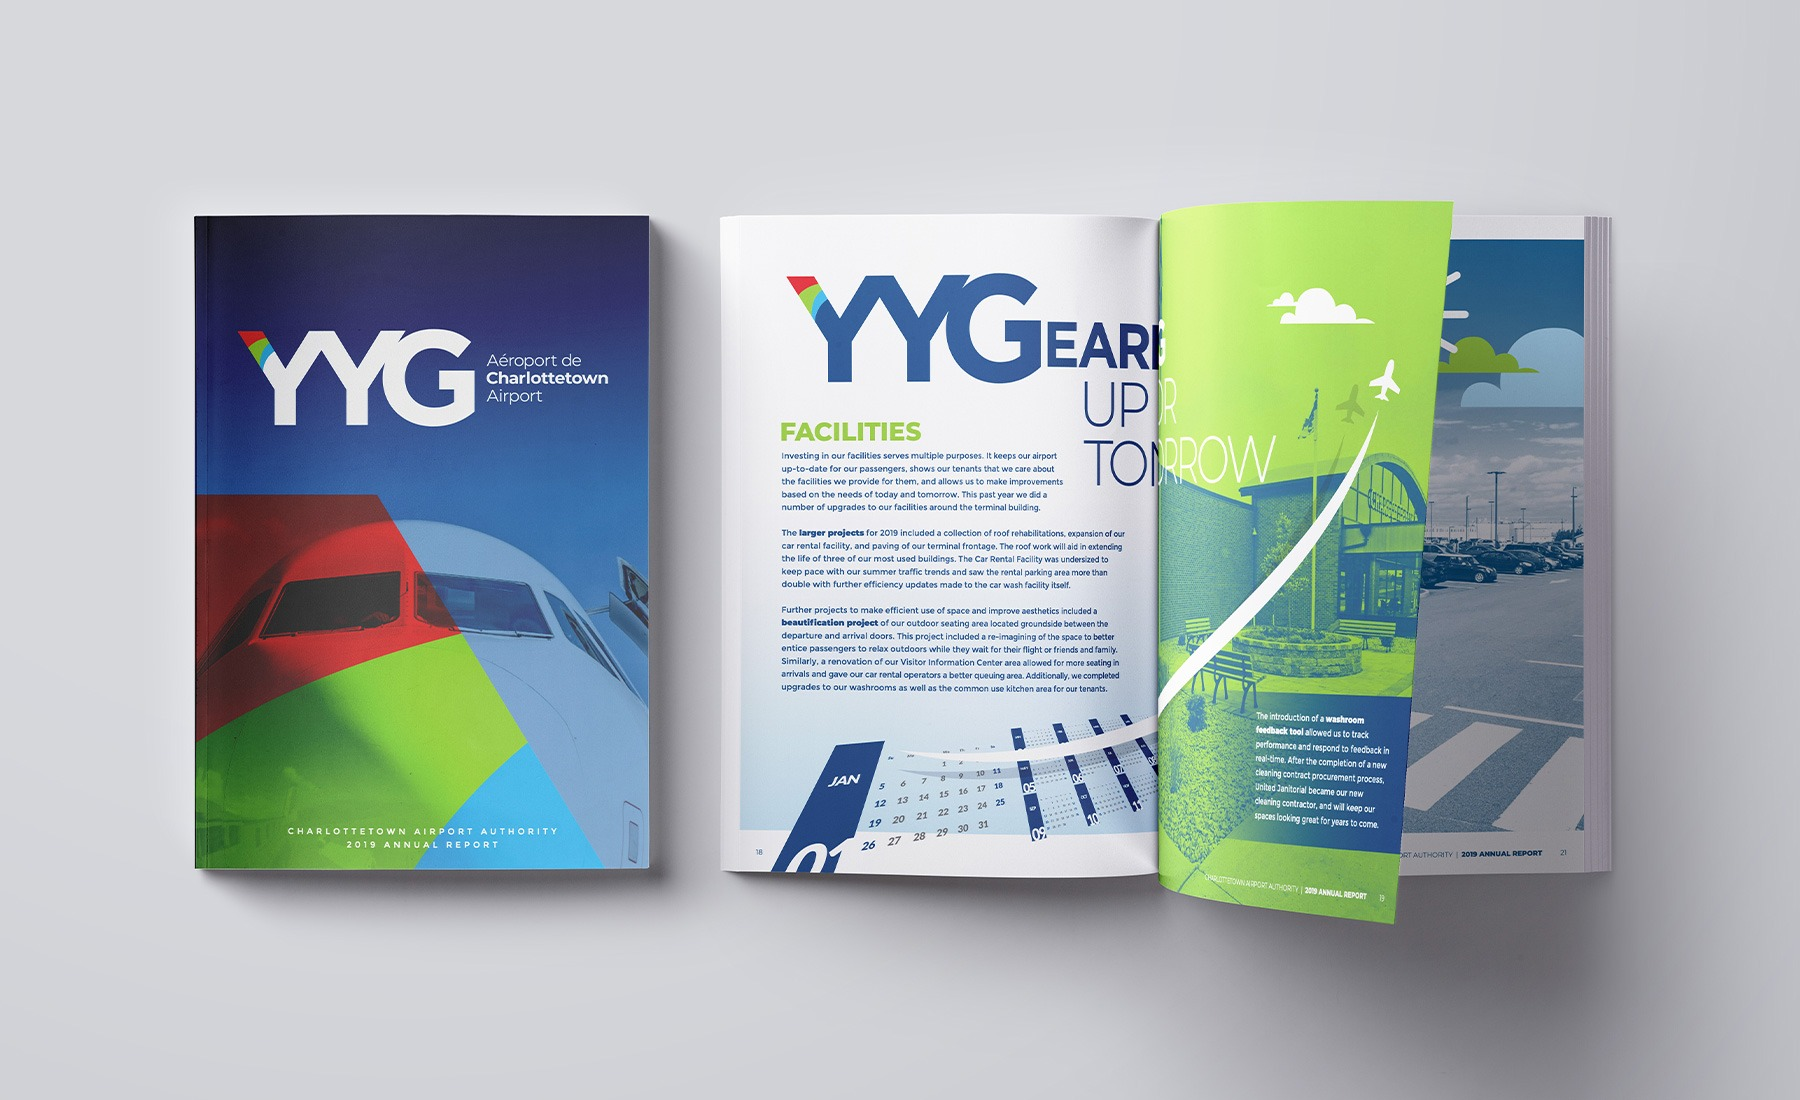 yyg-annual-report-cover-pages-2